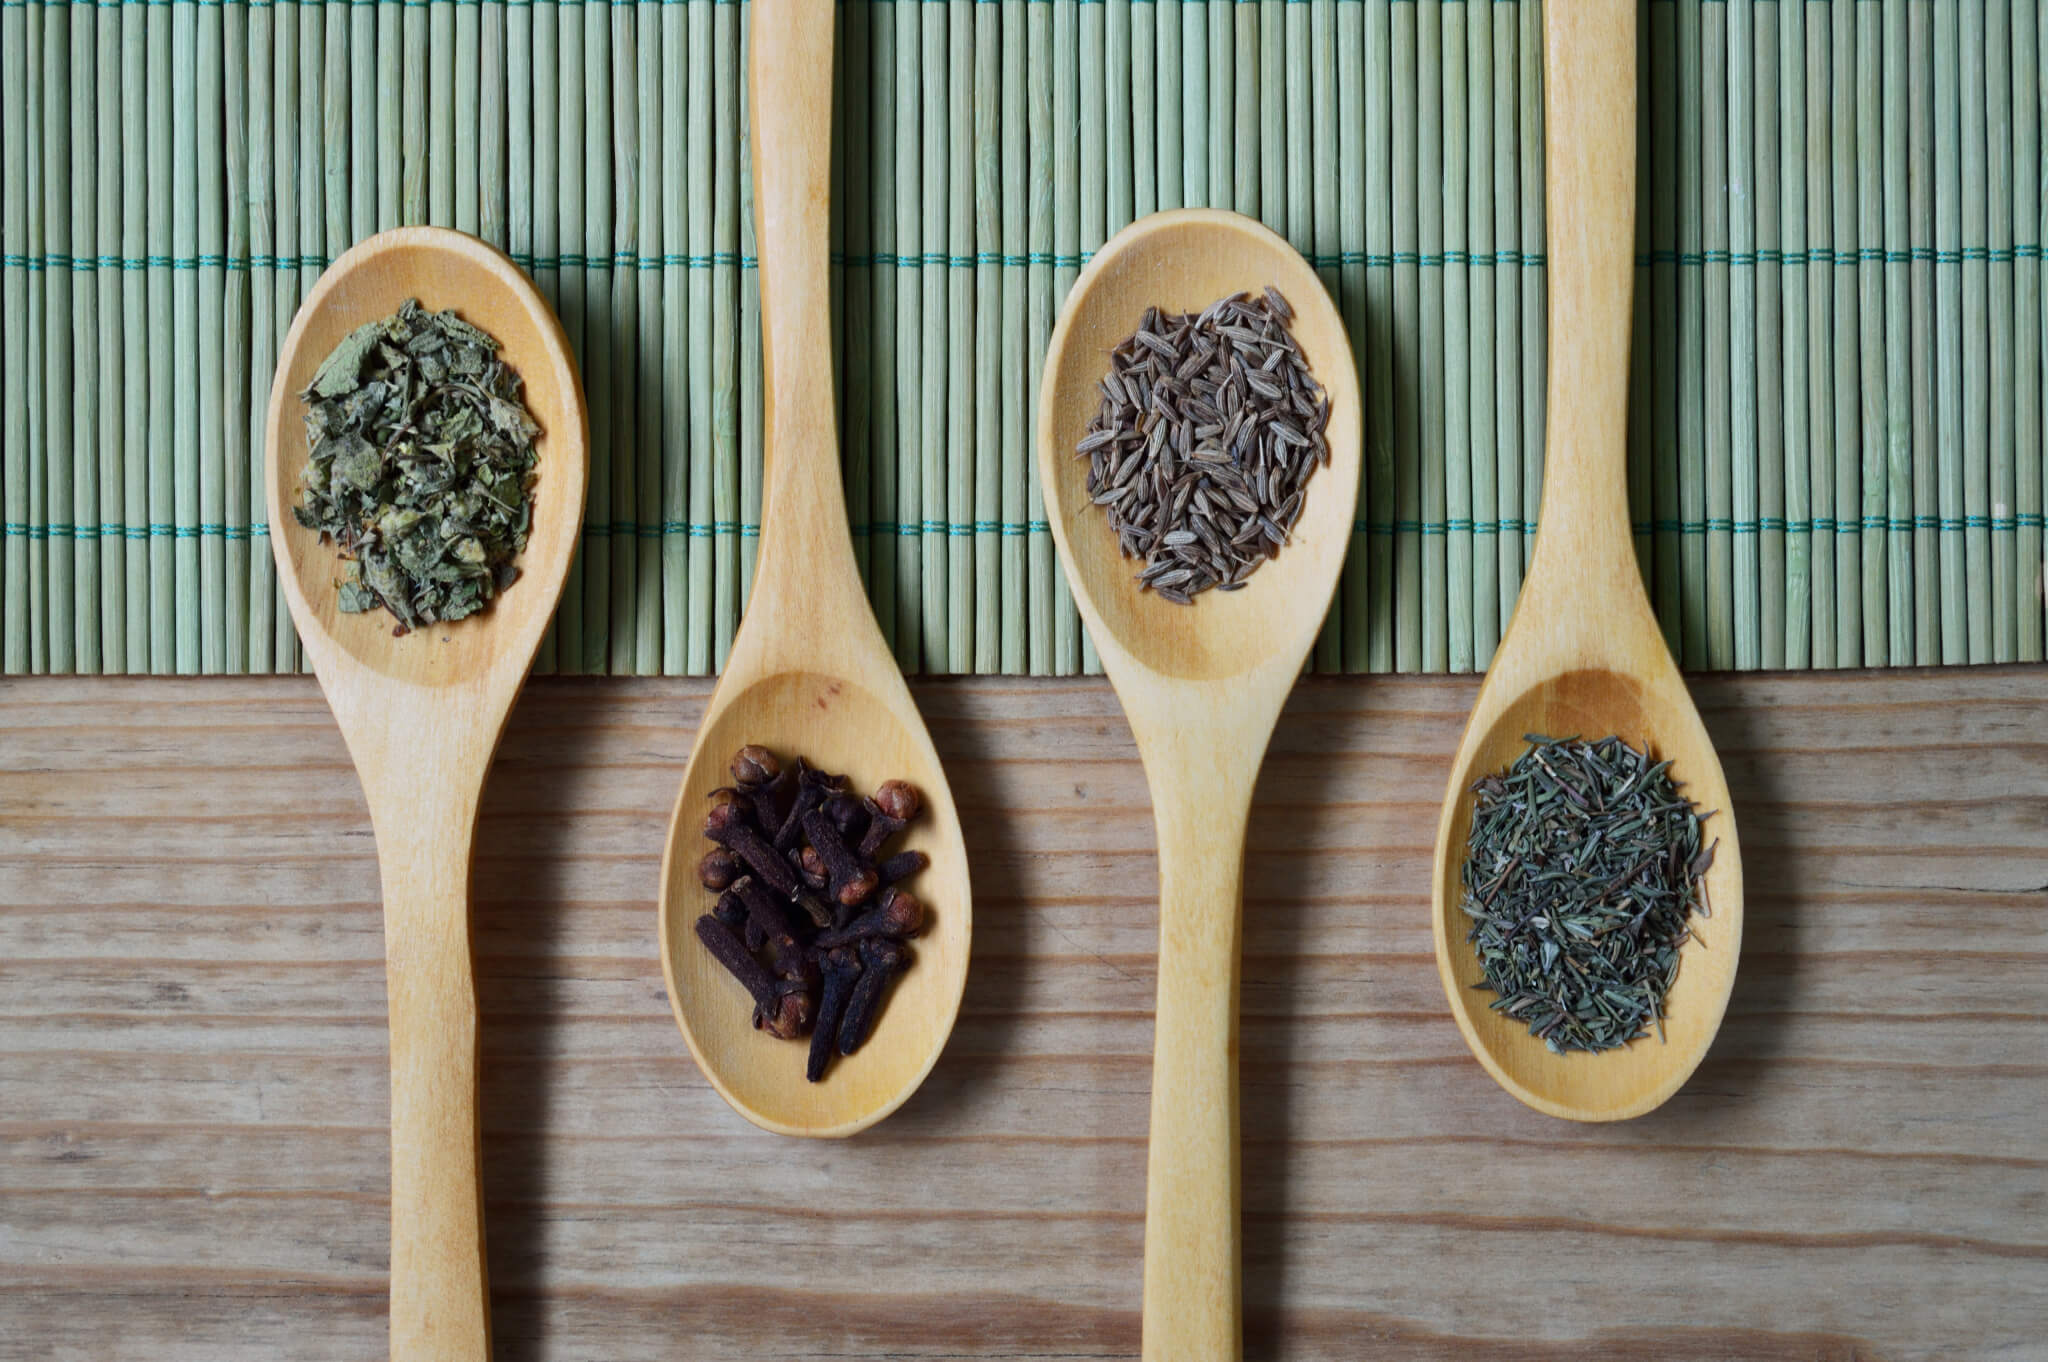 What are the most common Chinese medicine herbs?